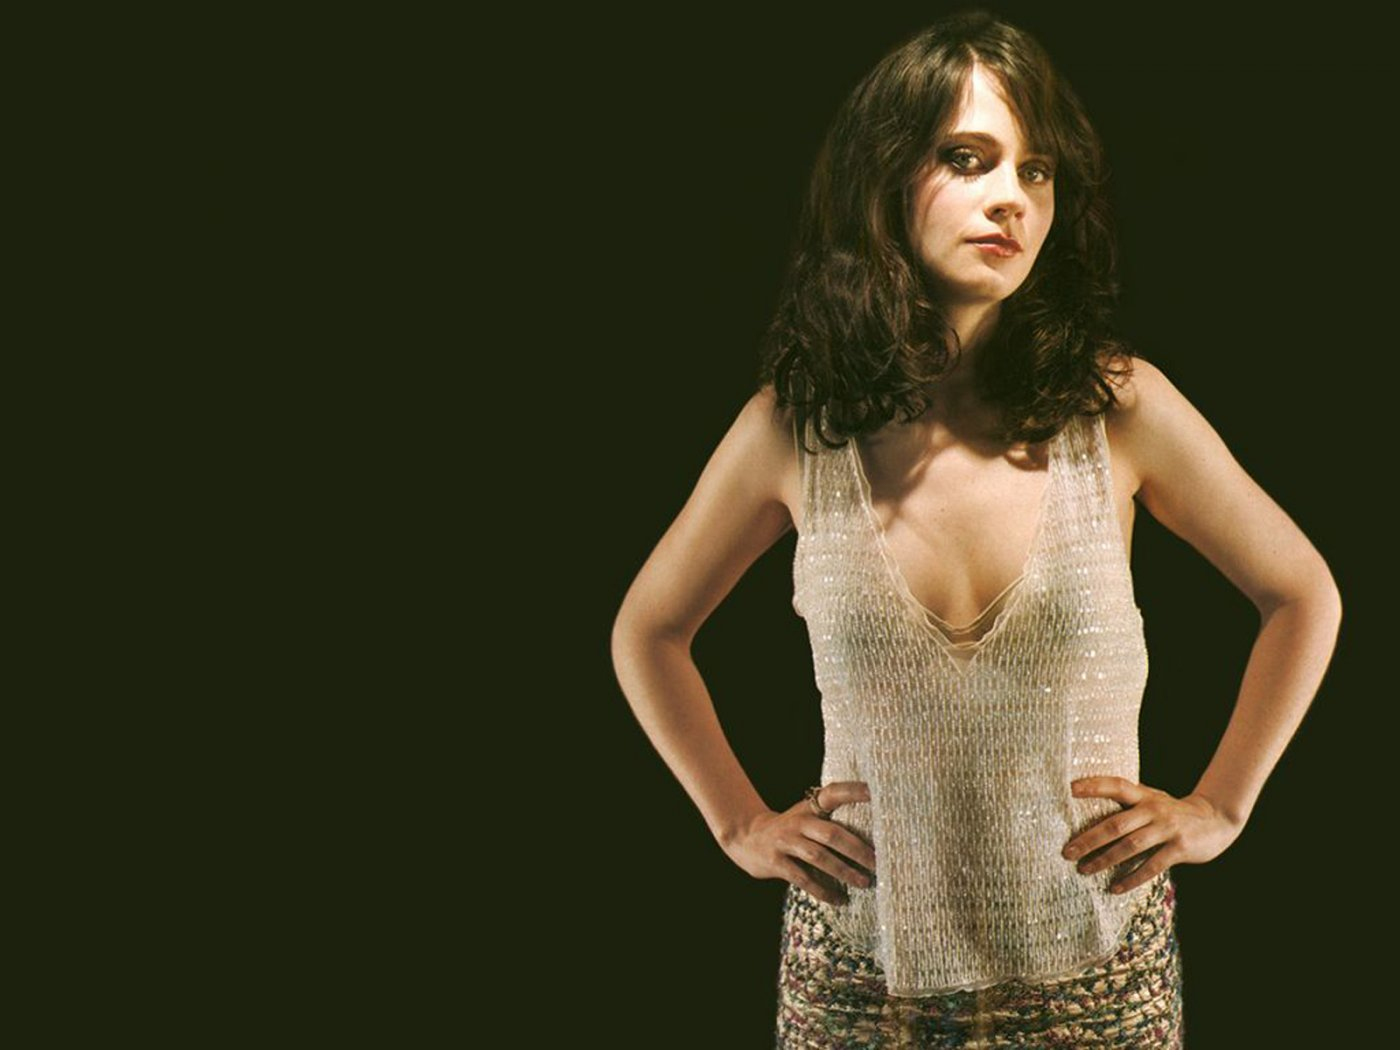 zooey deschanel hot dailyman40